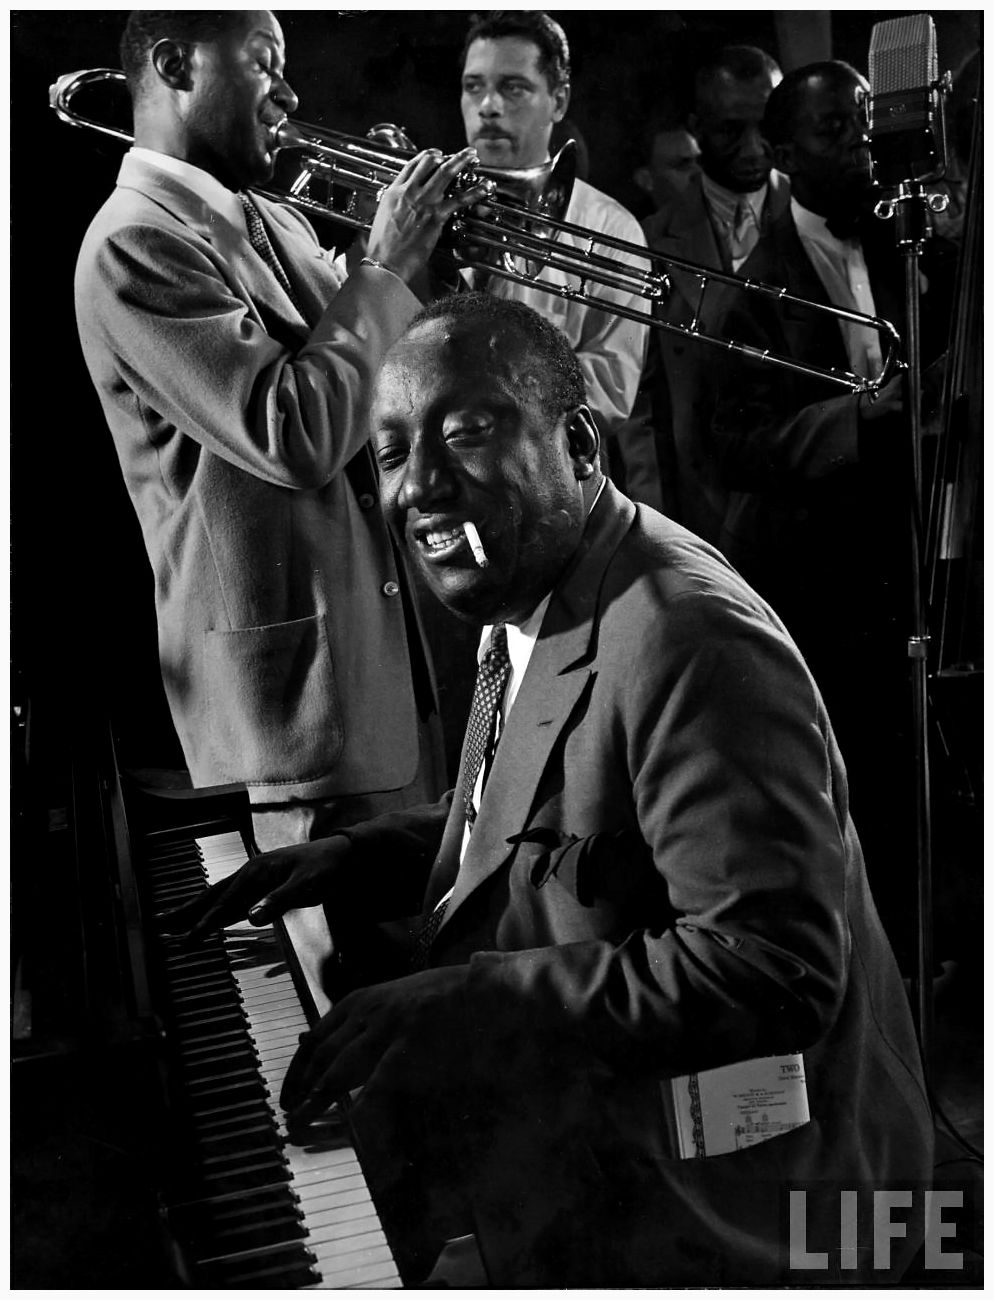 Very good of James P. Johnson at piano as Wilbur De Paris plays trombone, unident. others in bkgrnd. during jam session in studio of LIFE photographer Gjon Mili 1943 NYC